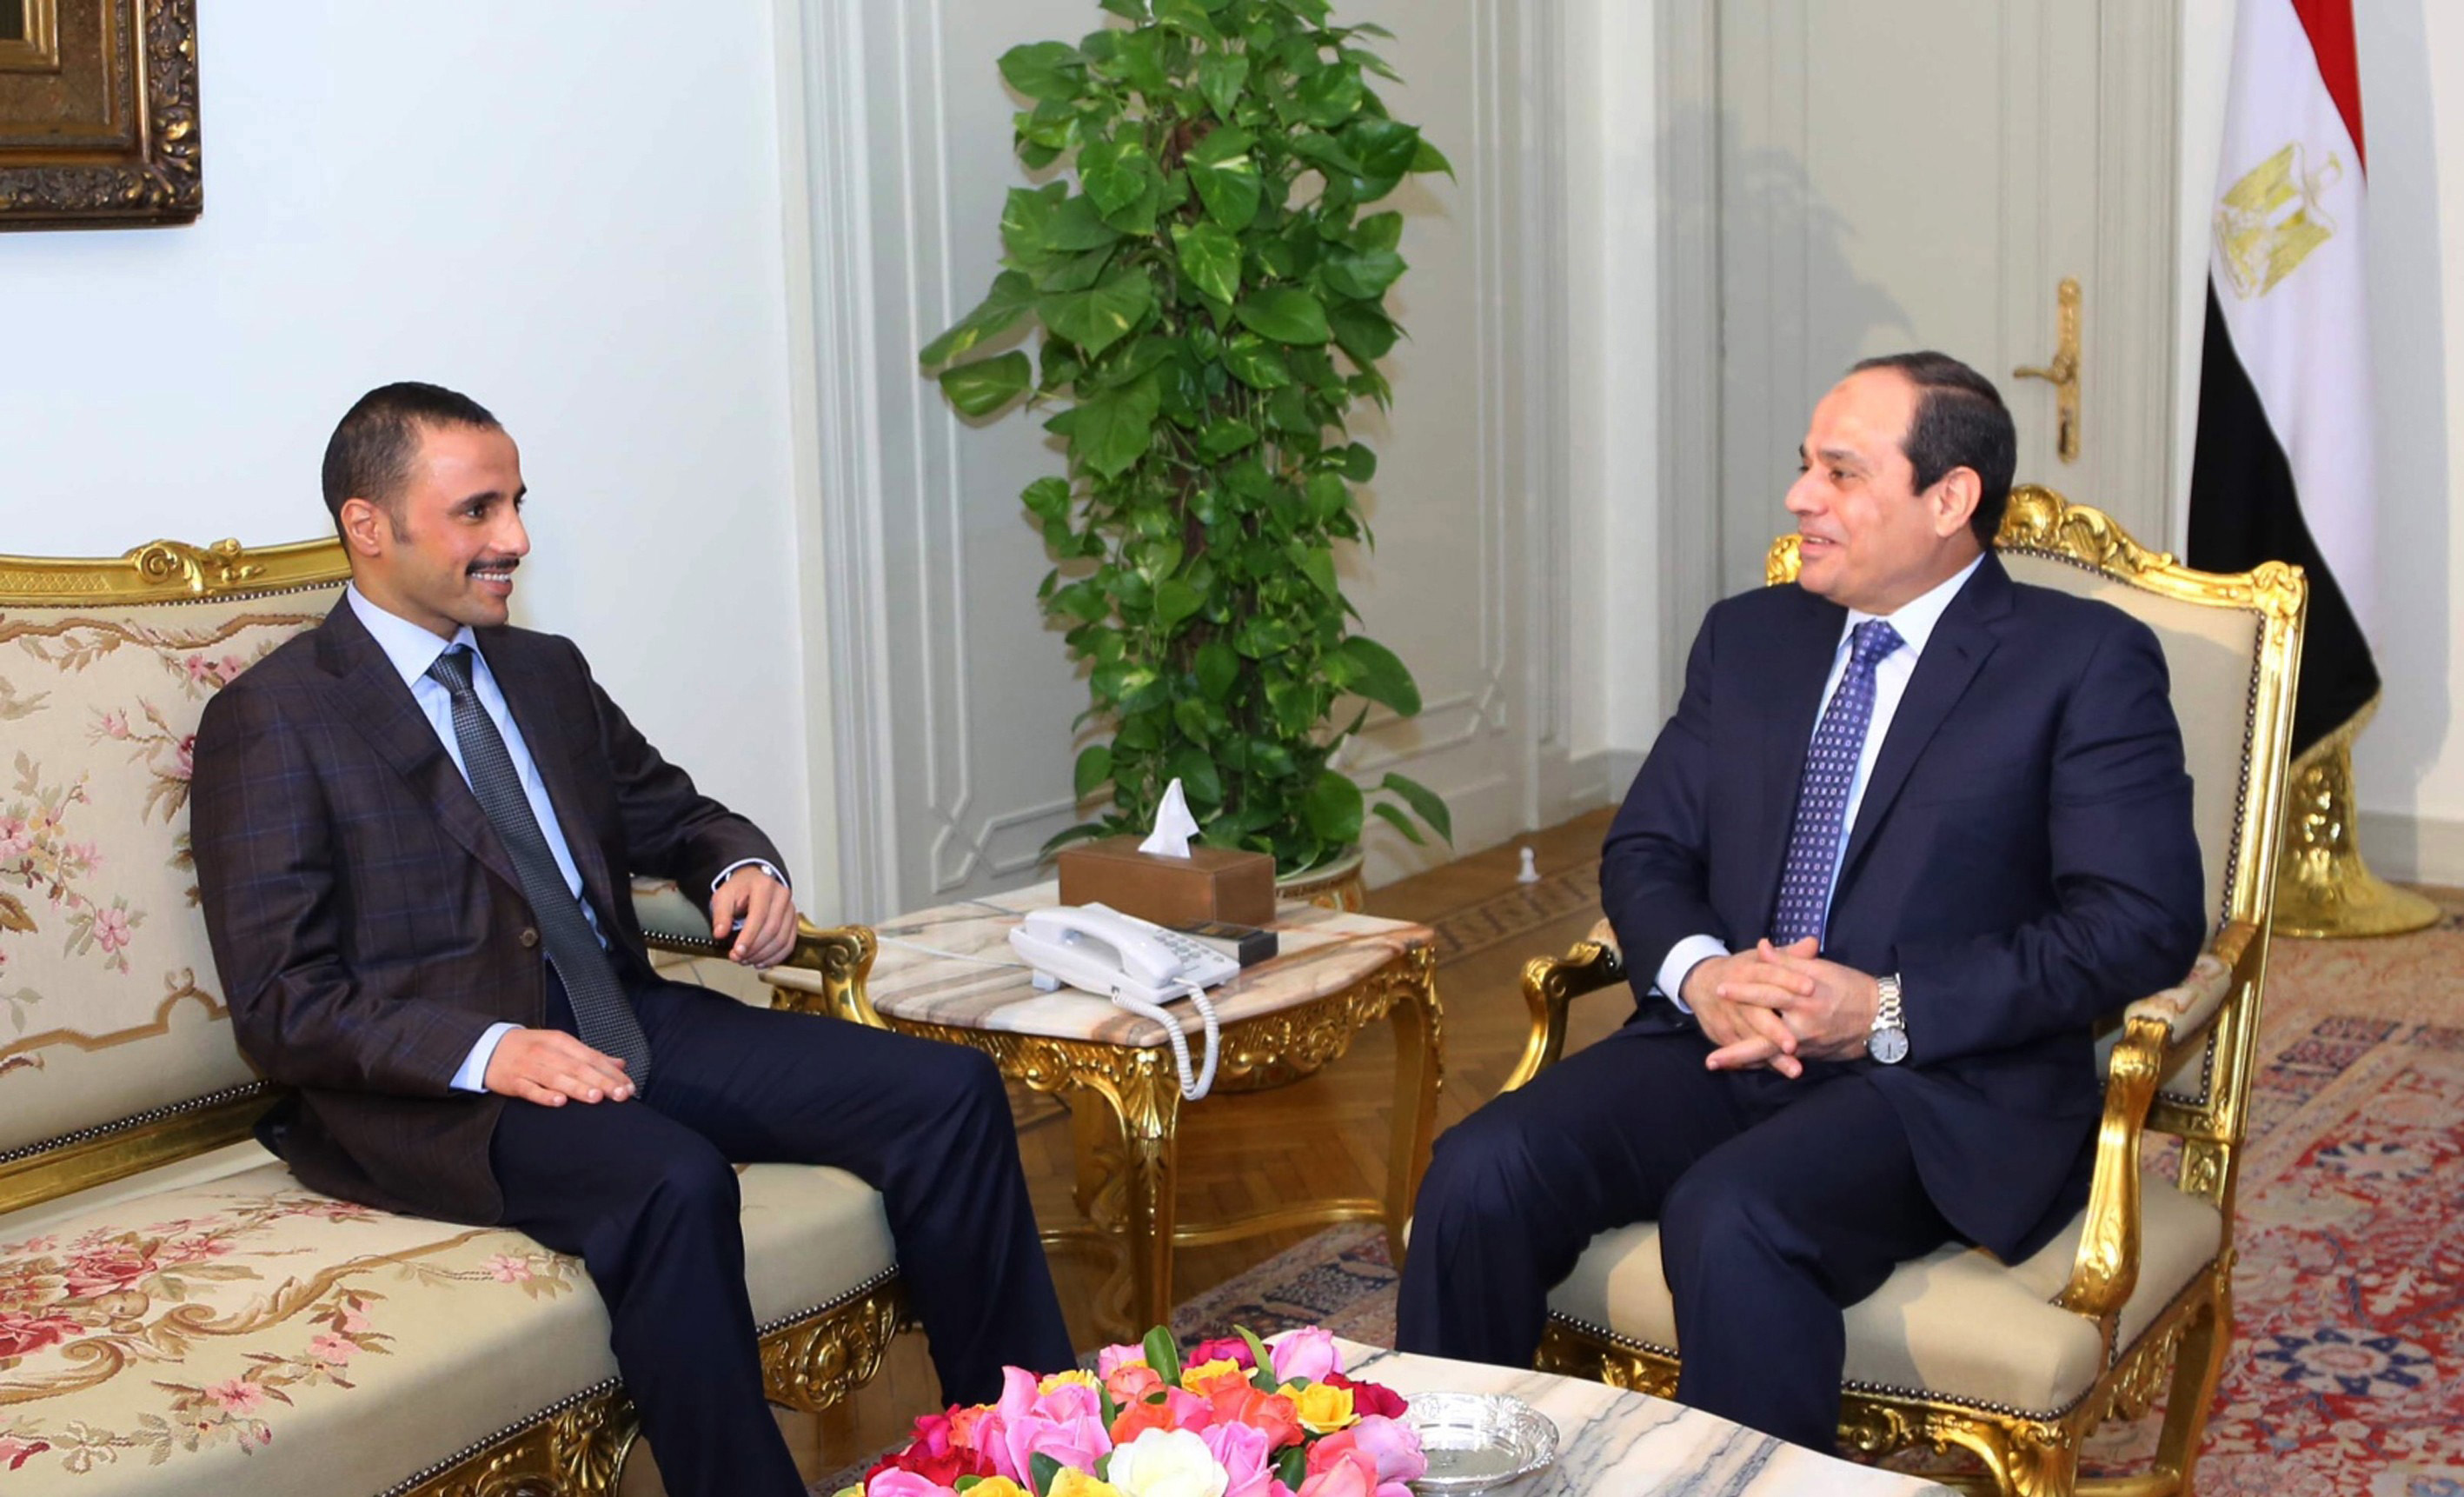 From left: Kuwait's parliamentary speaker Merzuk Ali el-Ganim meets with Egypt's President Abdel Fattah el Sisi in Cairo, Egypt on Dec. 27, 2014.